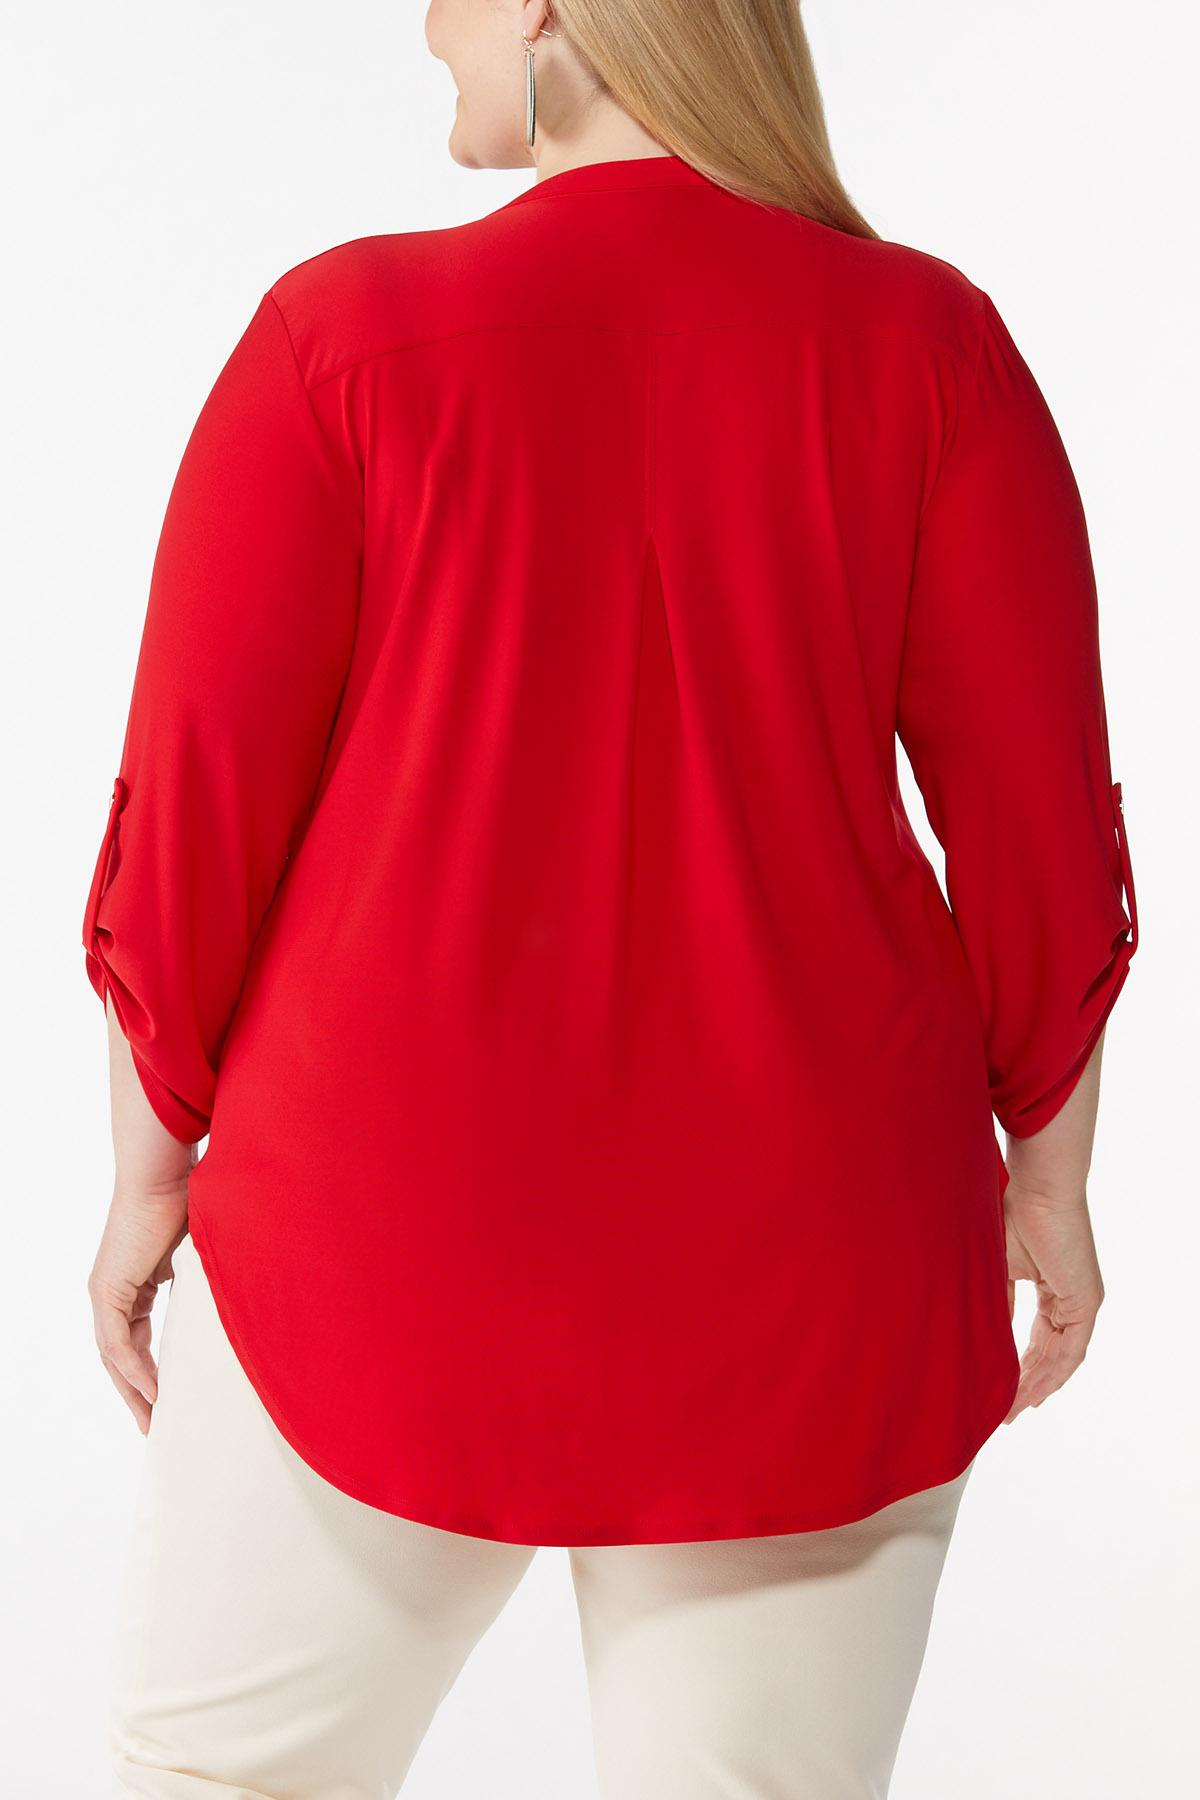 Plus Size Solid Scrunch Sleeve Top (Item #44060013)